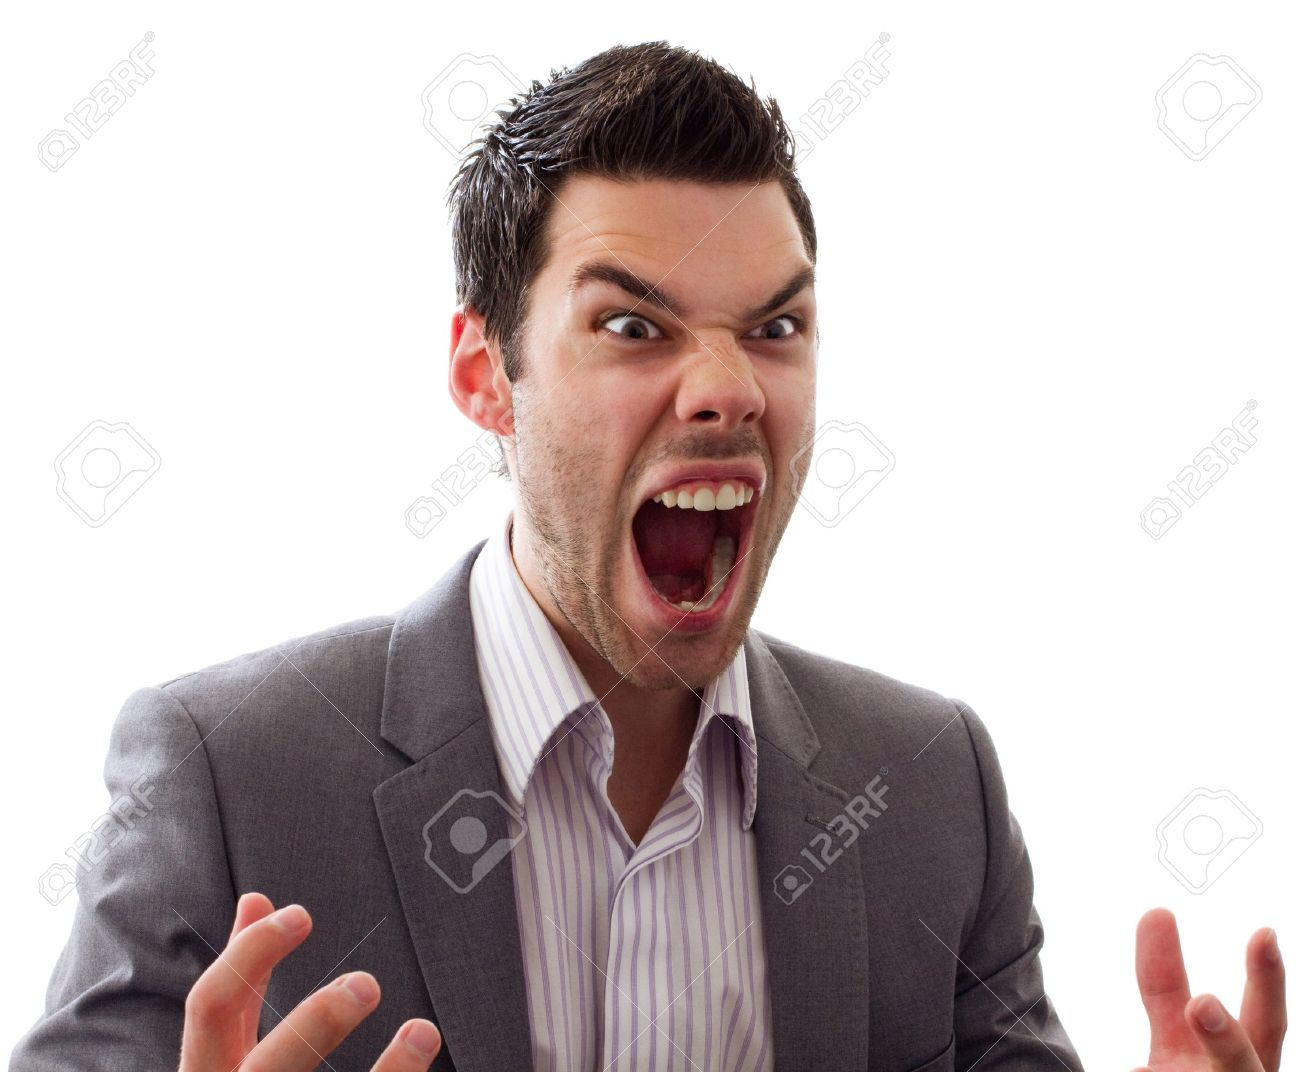 Very angry man screaming out loud, great expression Stock Photo - 9939054